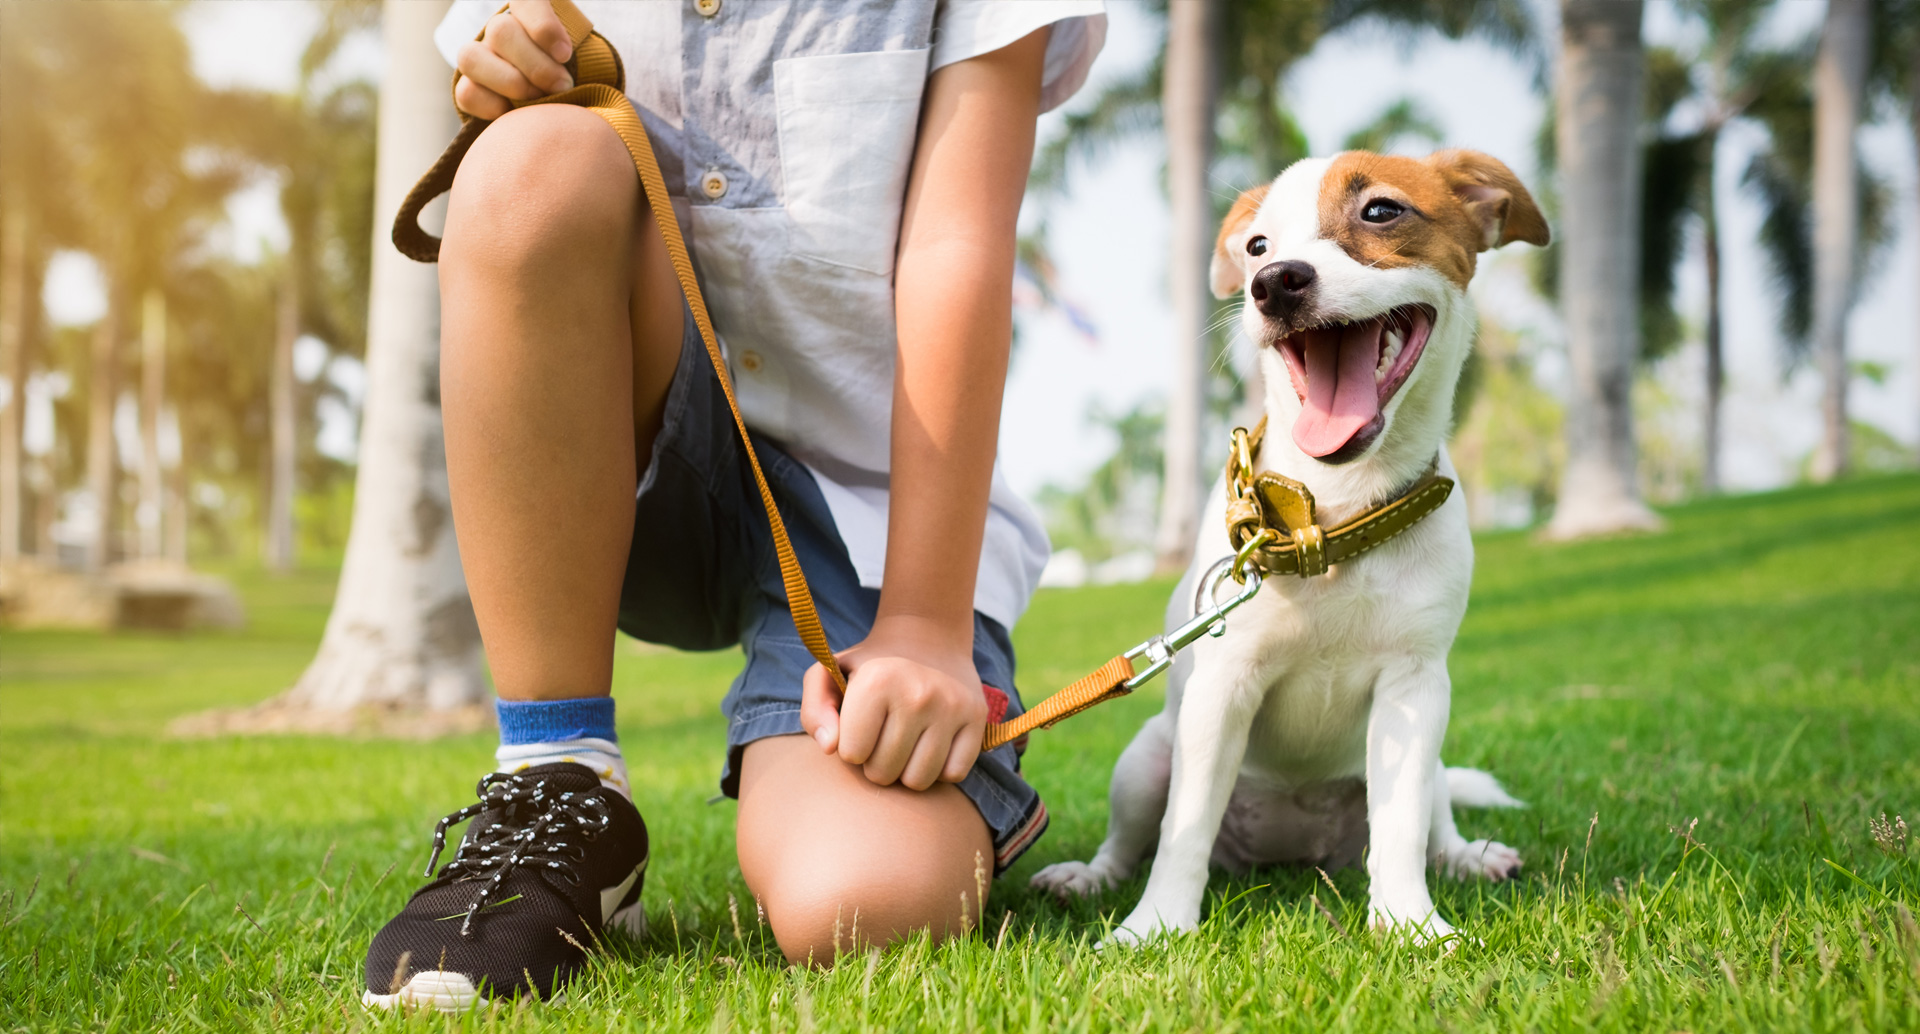 Excited Puppy on leash